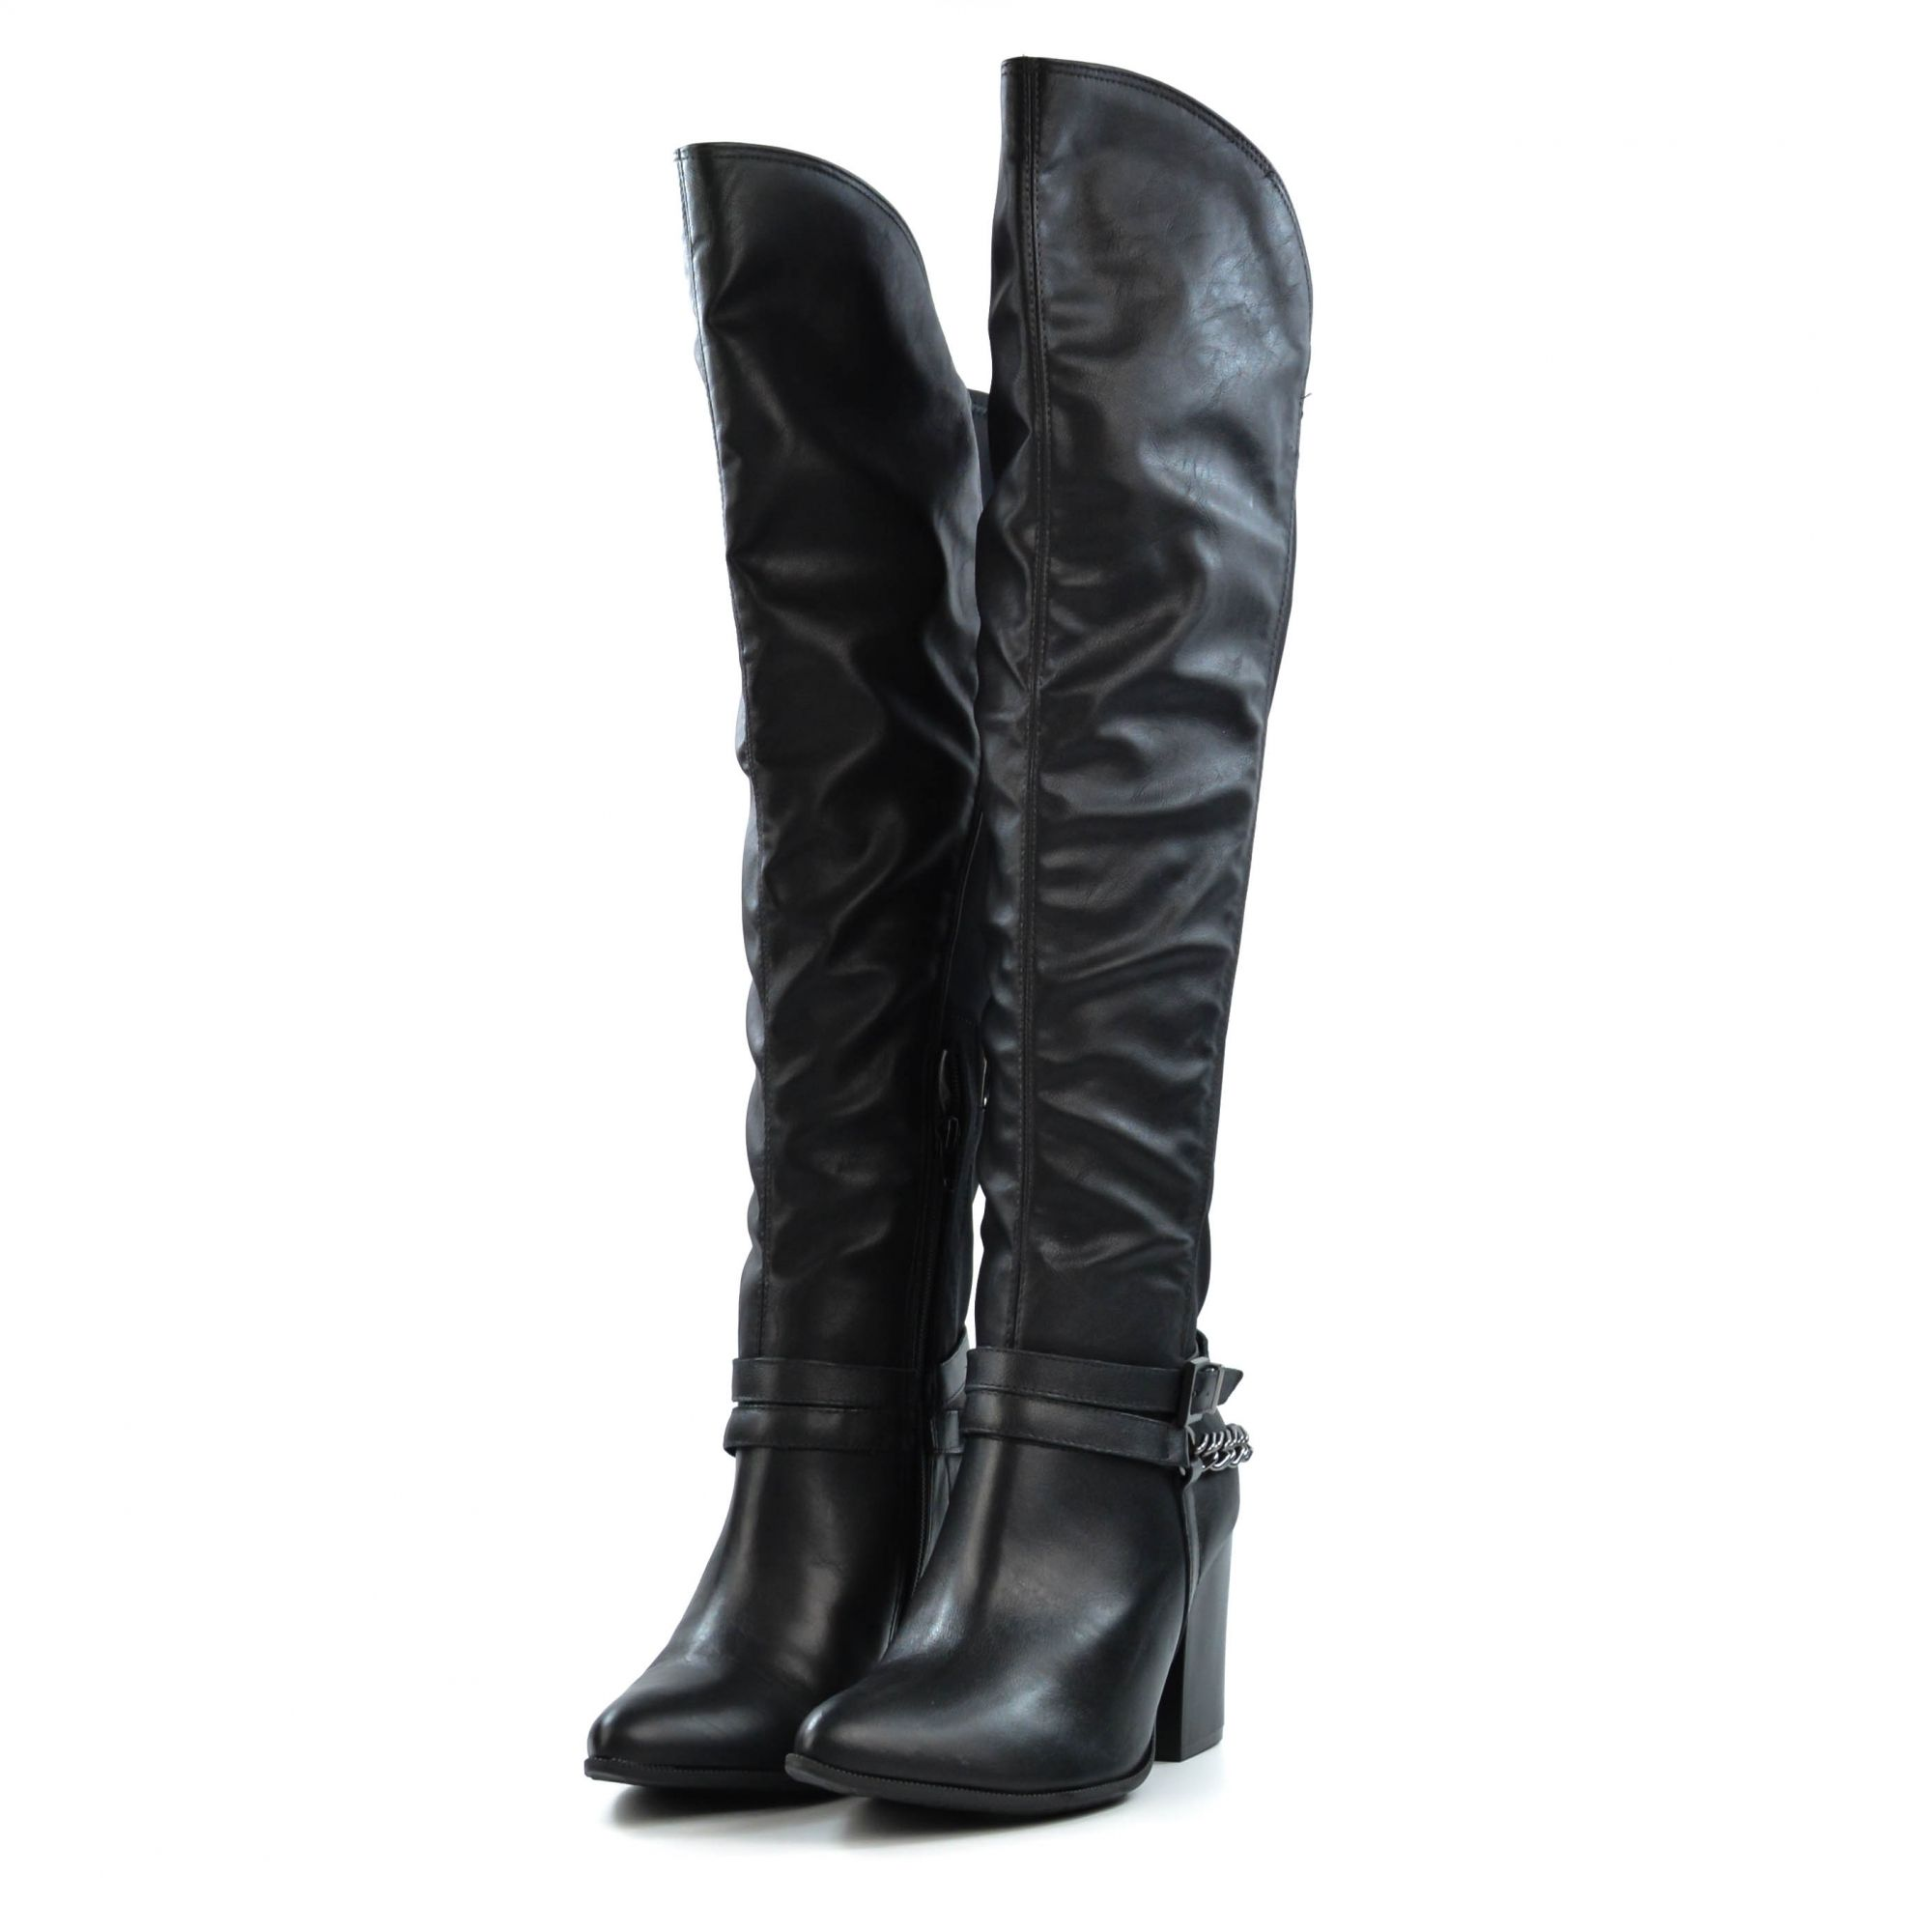 BOTA OVER THE KNEE 39 PRETA RAMARIM 1516106-08572 - Morga Modas 1b9ec6717ebc6